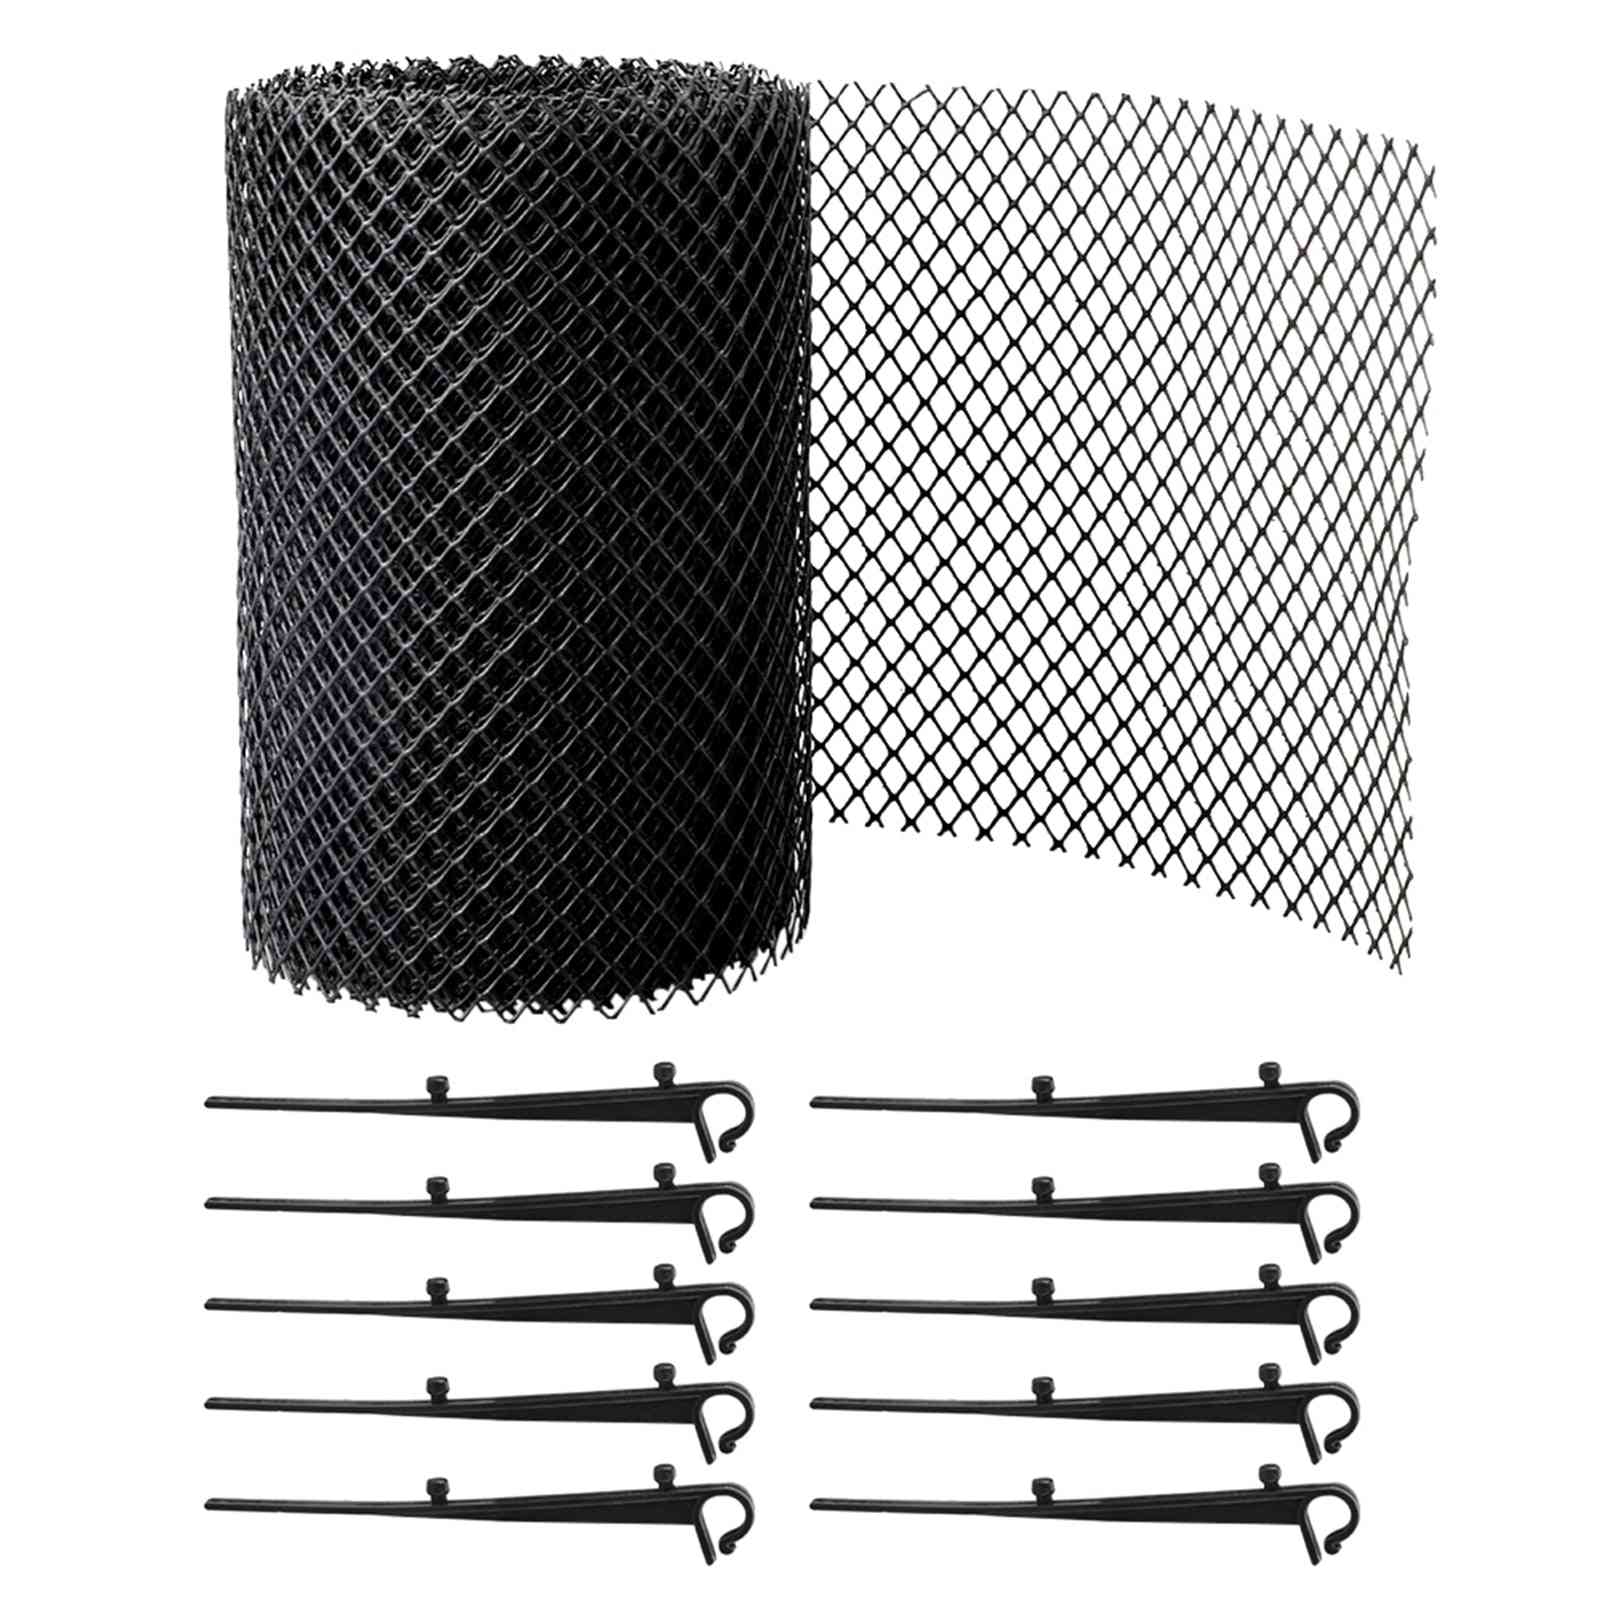 Anti Clogging Balcony Flexible Stops Leaves Reduce Overflow Gutter Guard Cleaning Tool Easy Install Floor Mesh Cover Garden